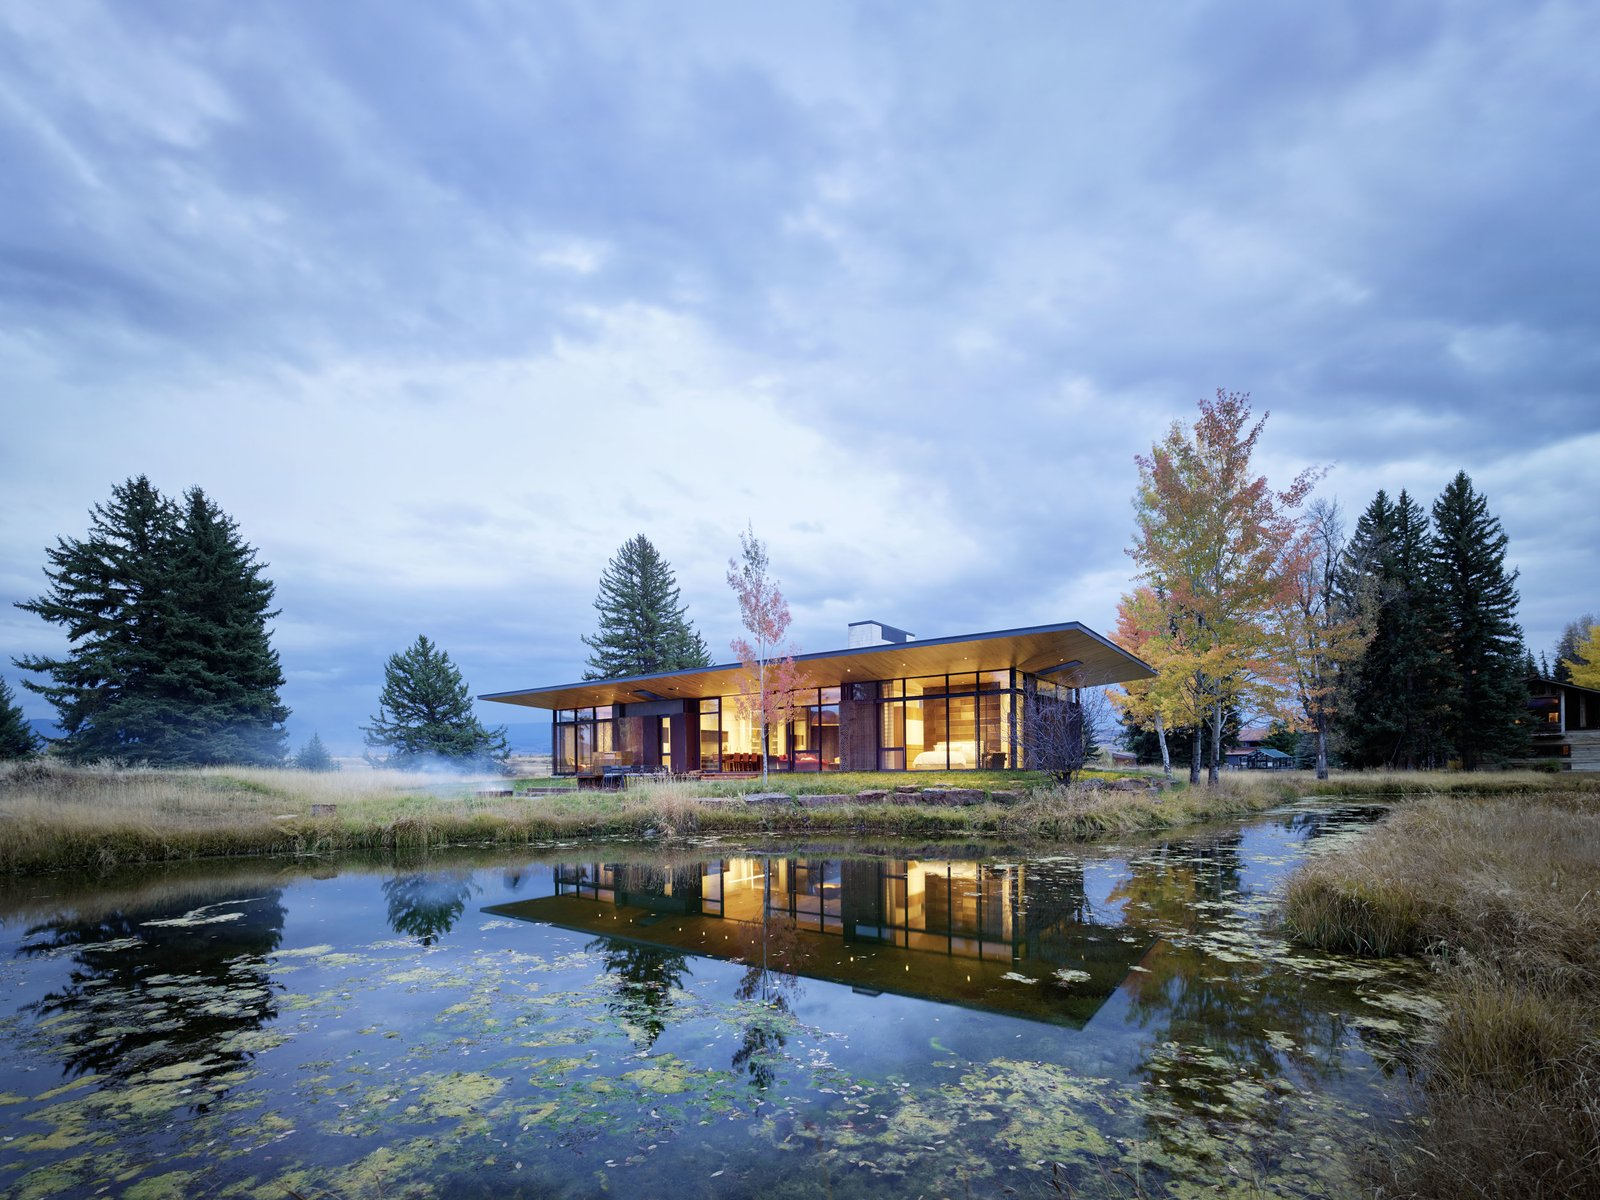 Photo 1 of 11 in A Museum-Like Glass Pavilion Brightens a Sprawling Jackson Hole Estate